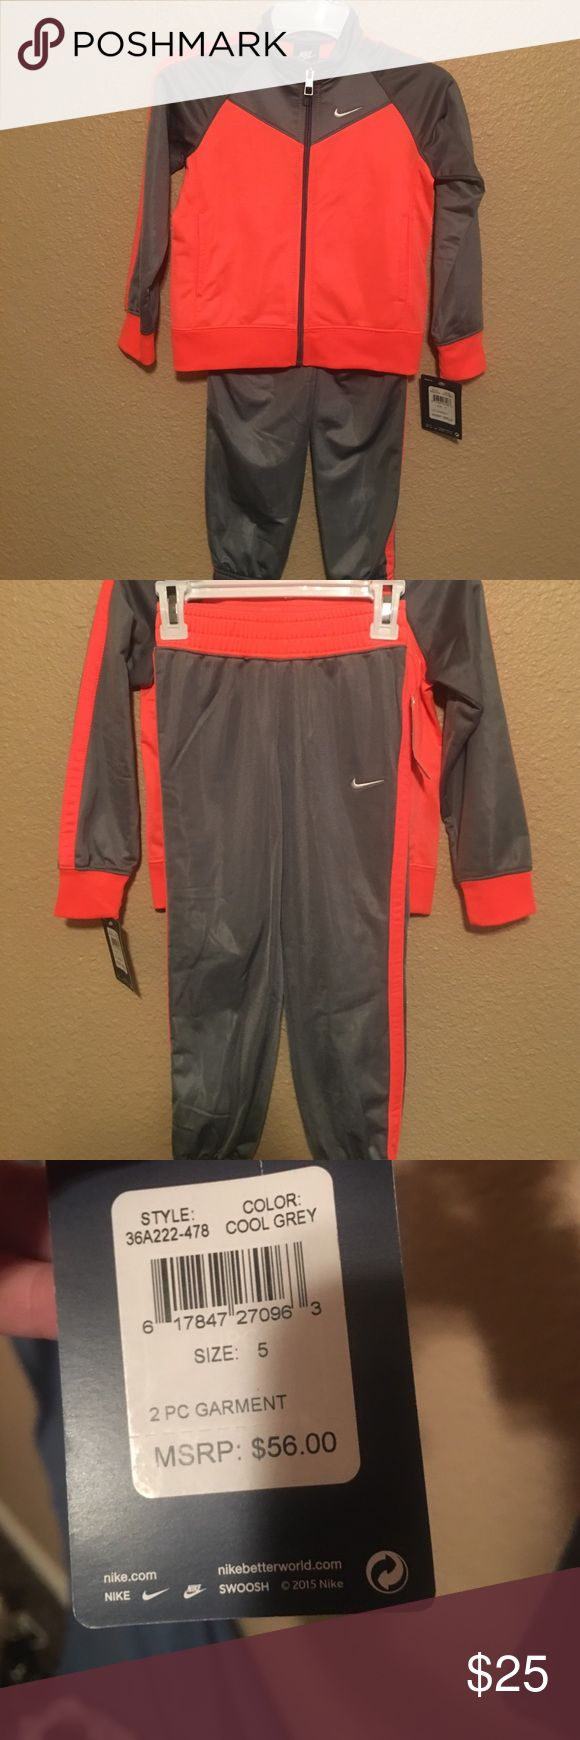 NWT toddler 5 Nike sweat suit Brand new. So adorable! Nike Matching Sets